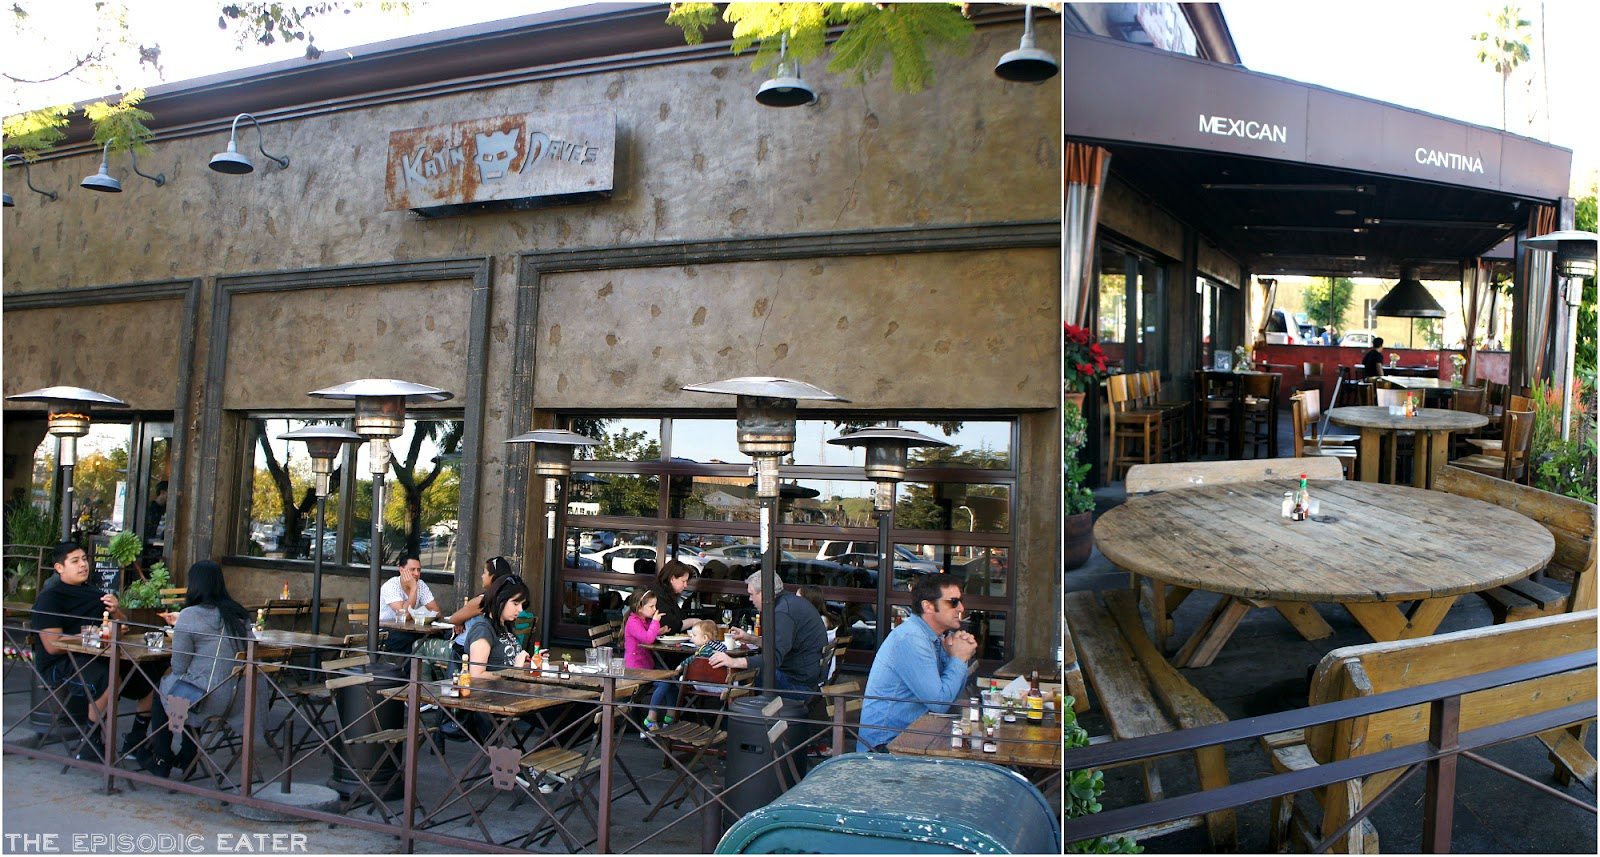 Kay 'N Dave's Cantina (Culver City, CA) on The Episodic Eater